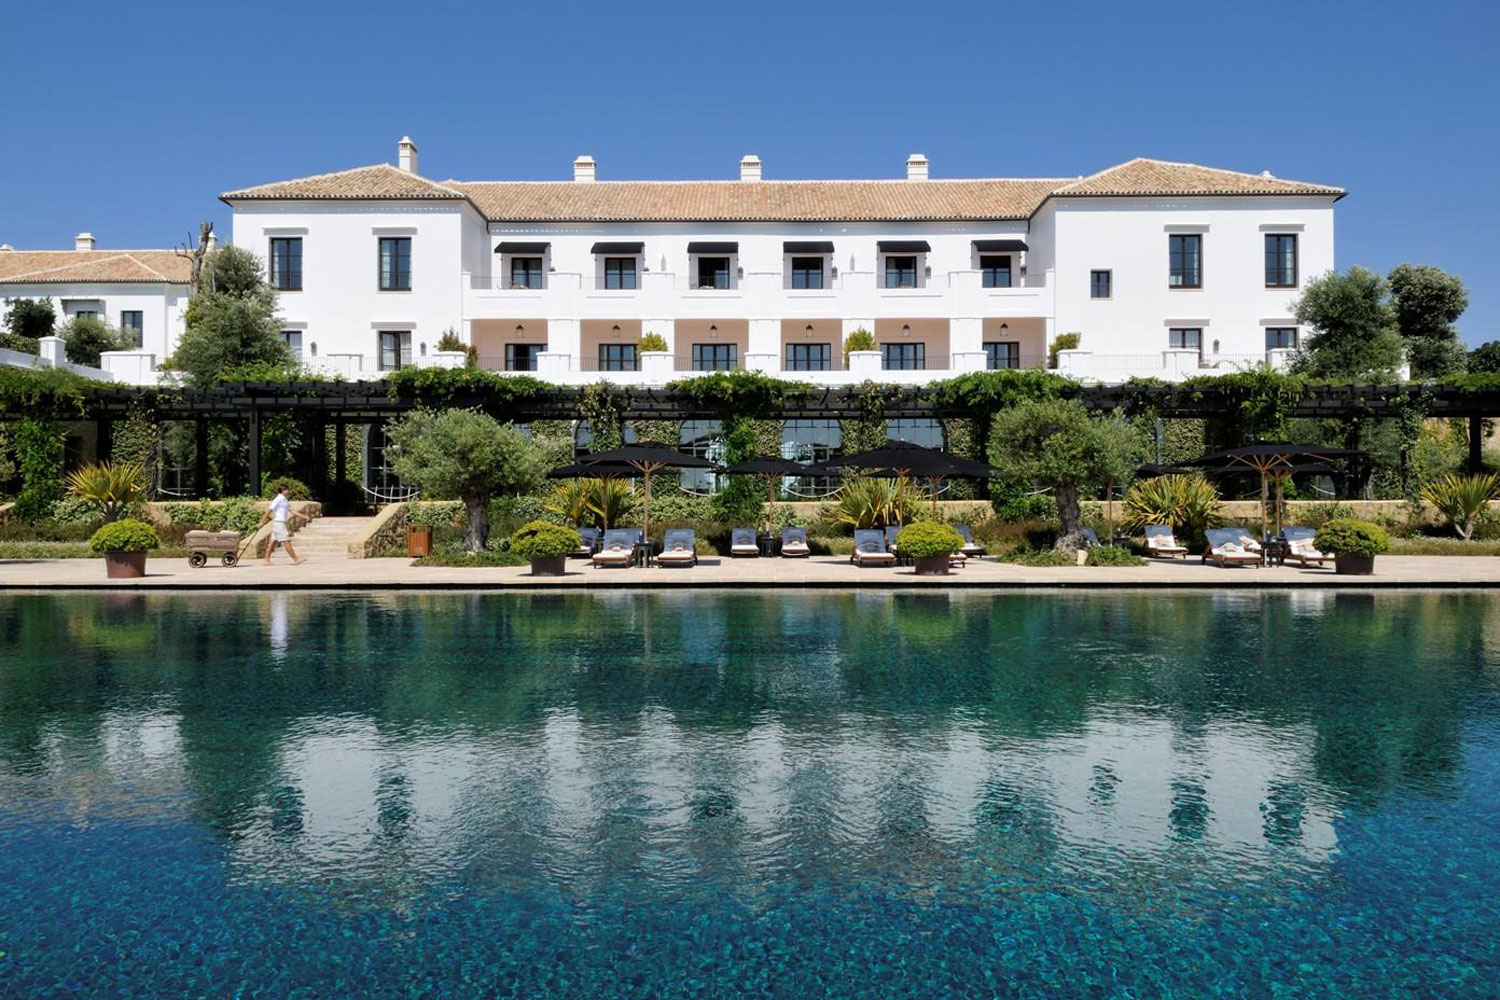 Europe-Holiday-Destinations-Finca-Cortesin-Andalusia-Spain